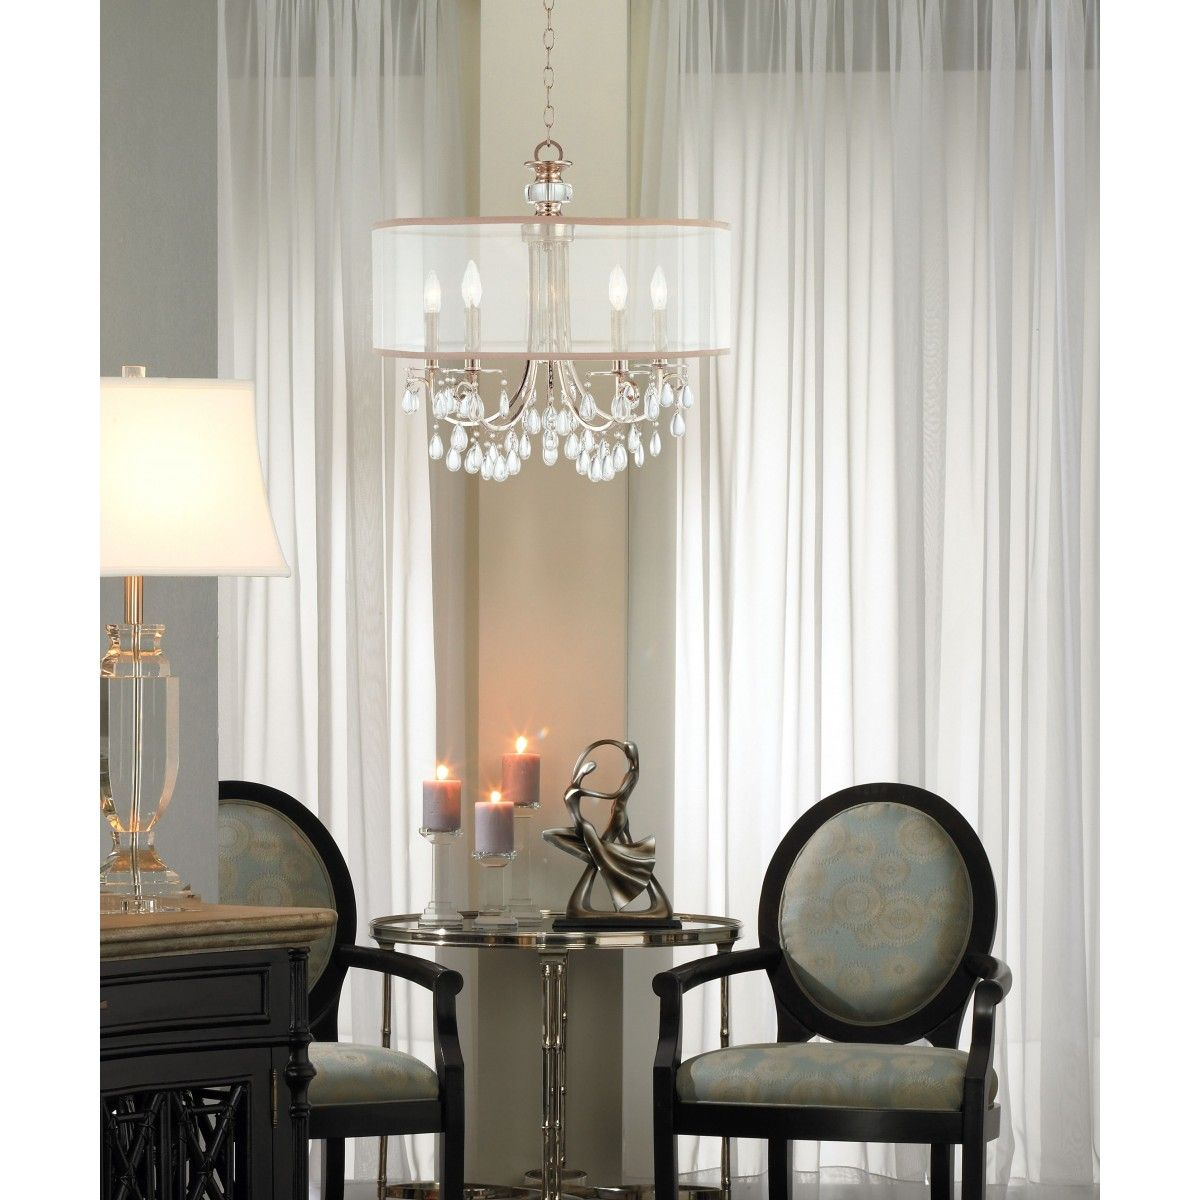 Crystorama hampton 5 light chandelier available at design lighting in surrey bc chandeliers - Sparkling small crystal chandelier designs for any interior room ...